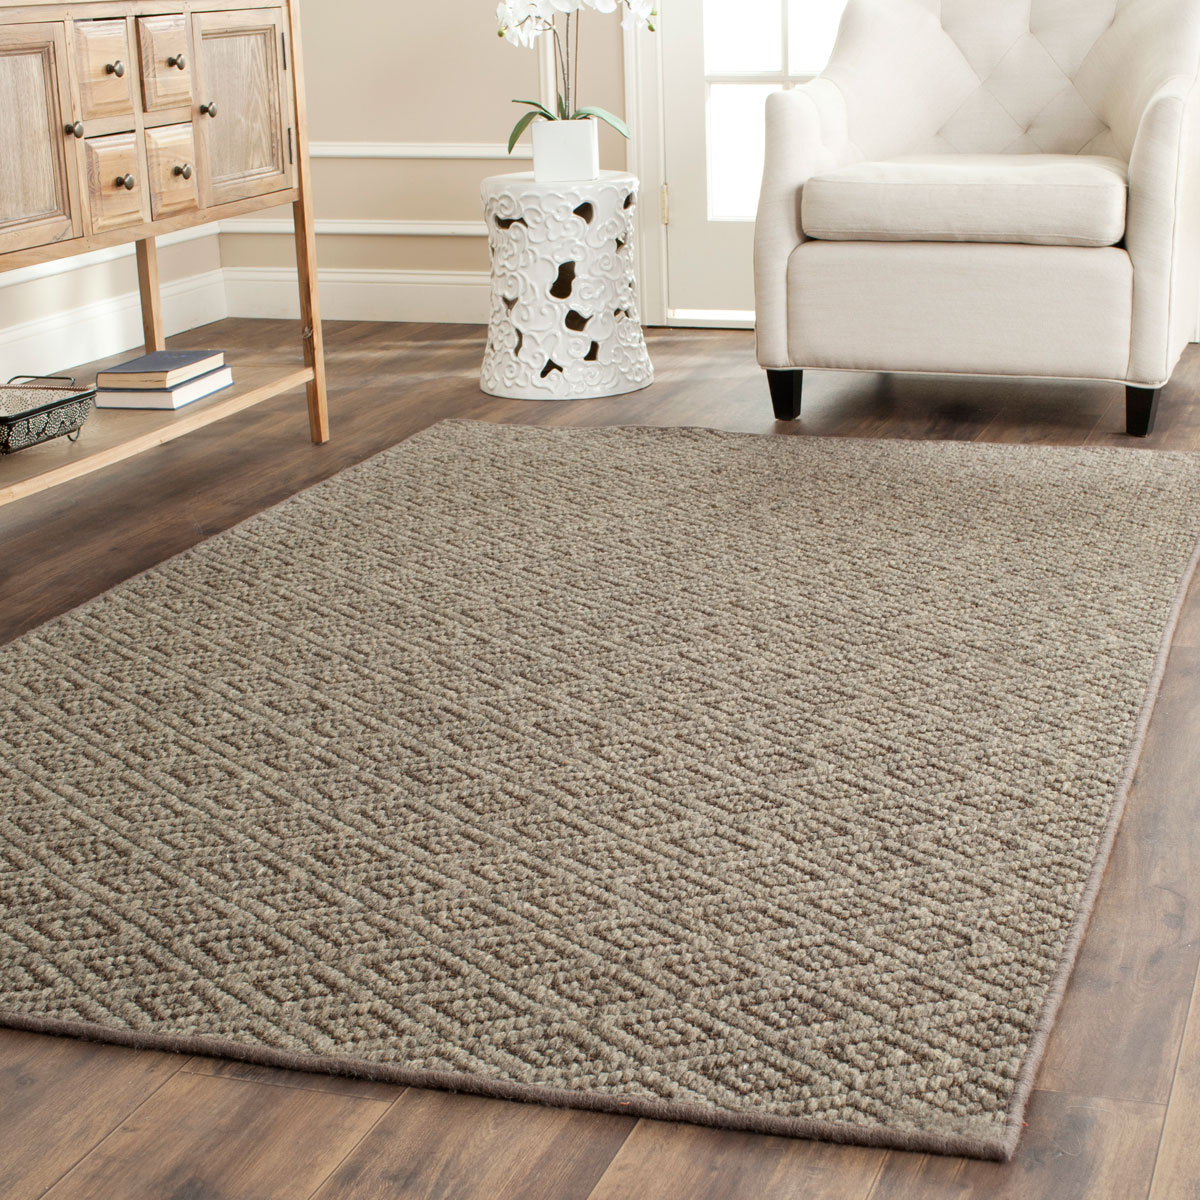 Rug Dmd521b Diamond Area Rugs By Safavieh